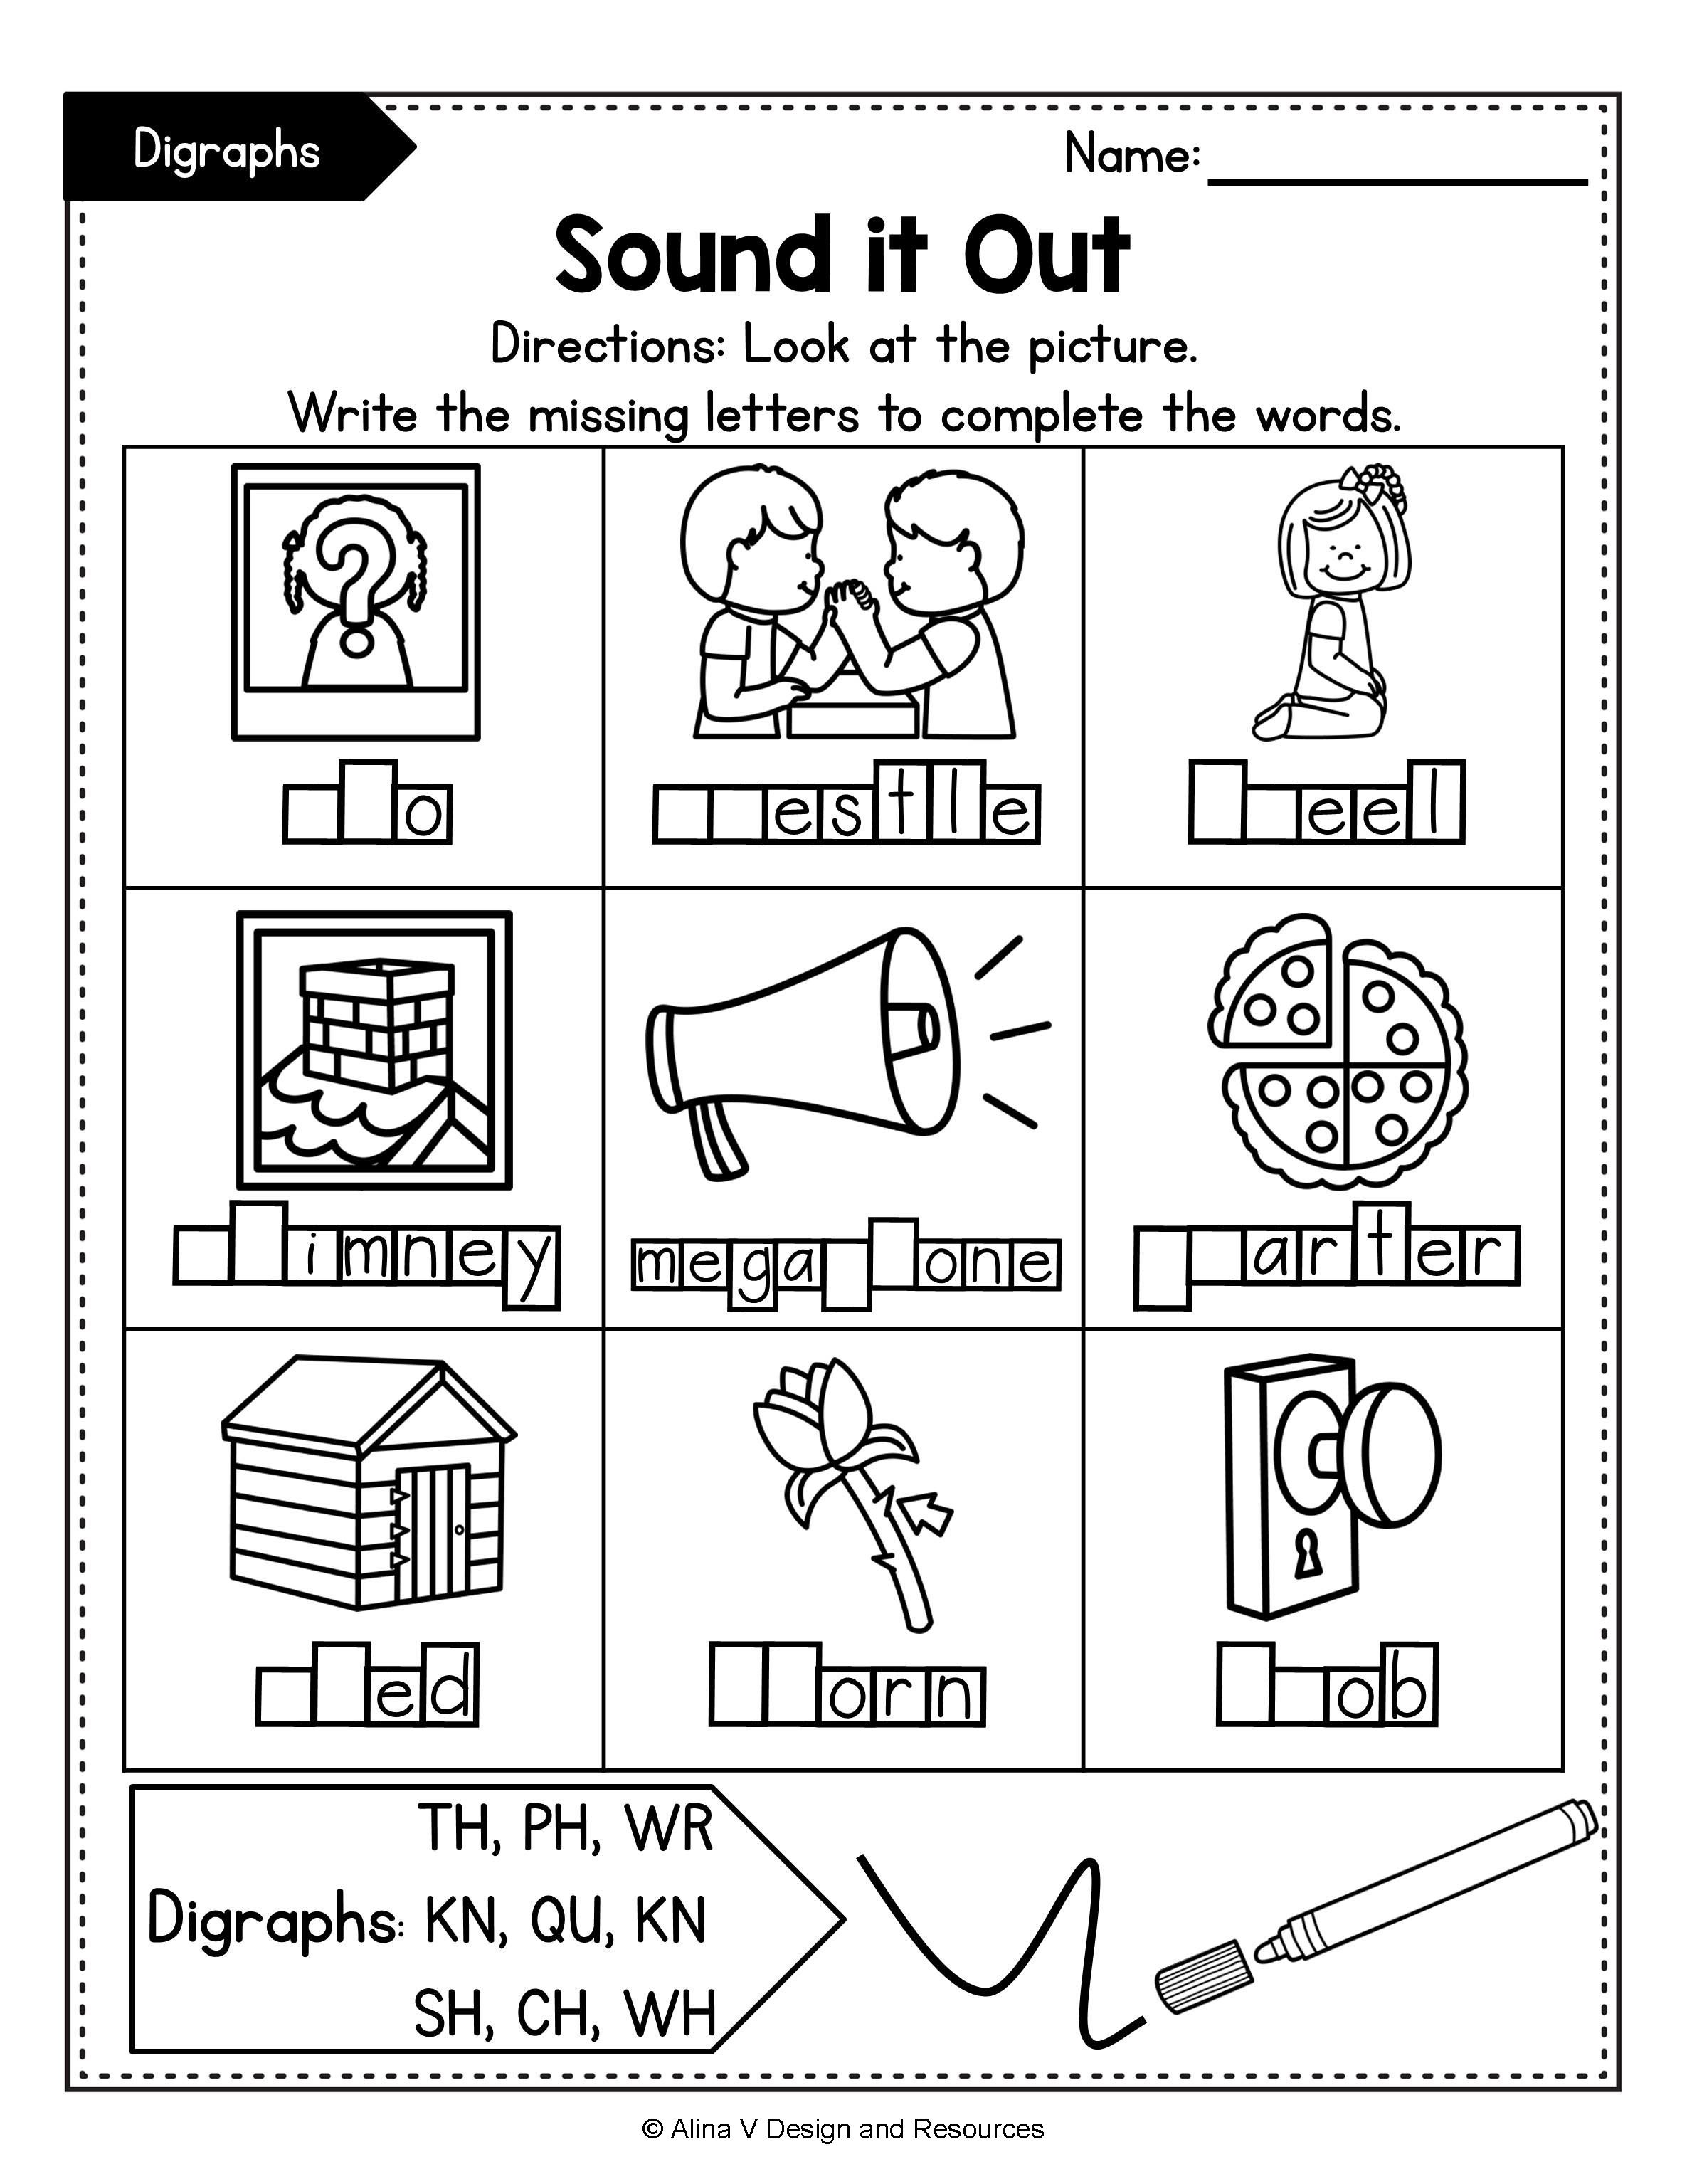 Consonant Digraphs Worksheets Sh Ch Th Wh Ph Kn Wr Qu In 2020 Digraph 2nd Grade Activities 1st Grade Activities